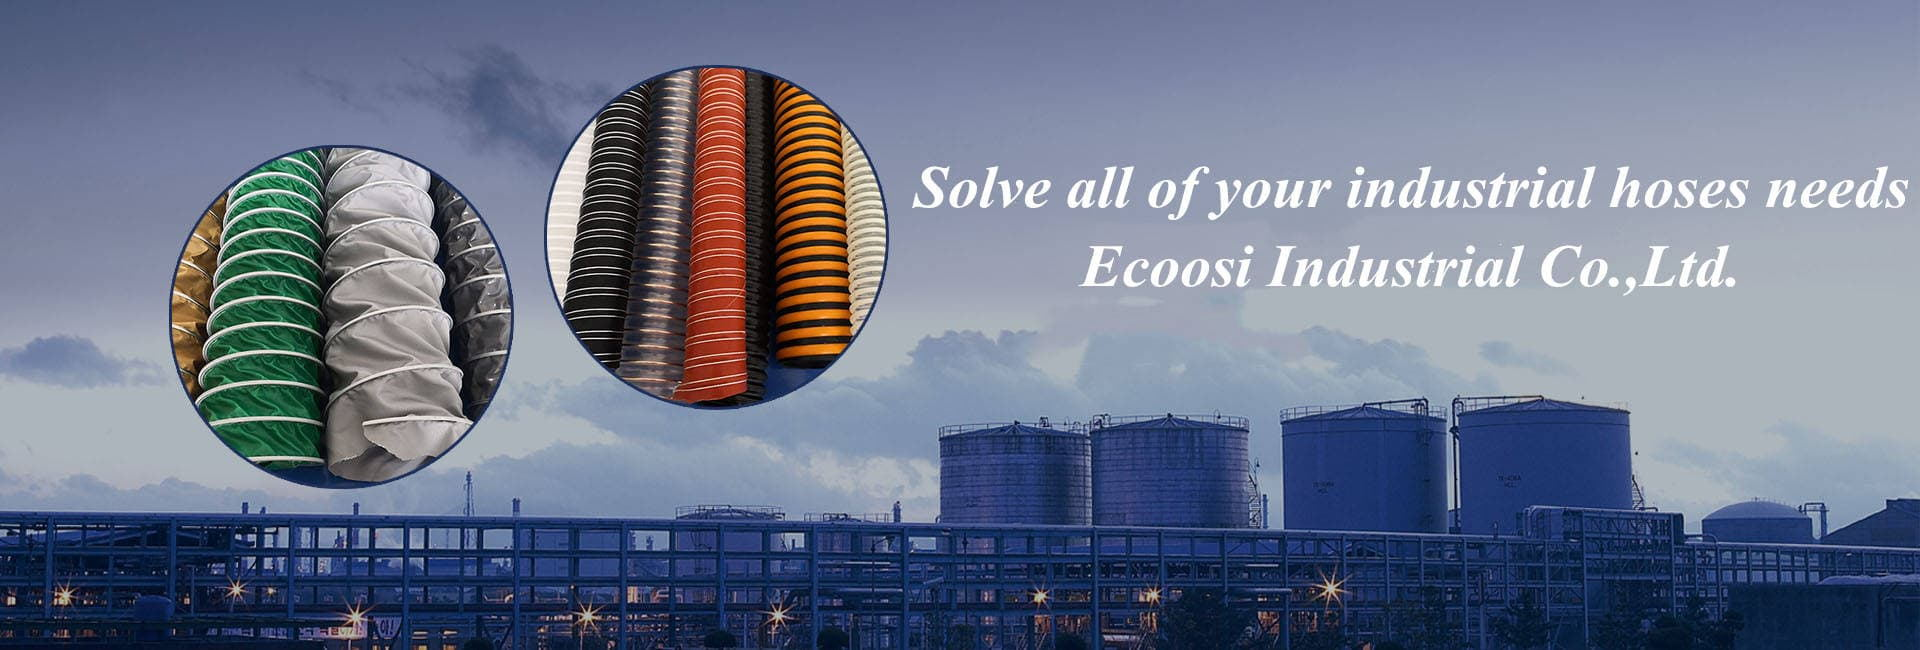 Industrial Flexible Air Ducting Hose From Ecoosi Industrial Co.,Ltd.